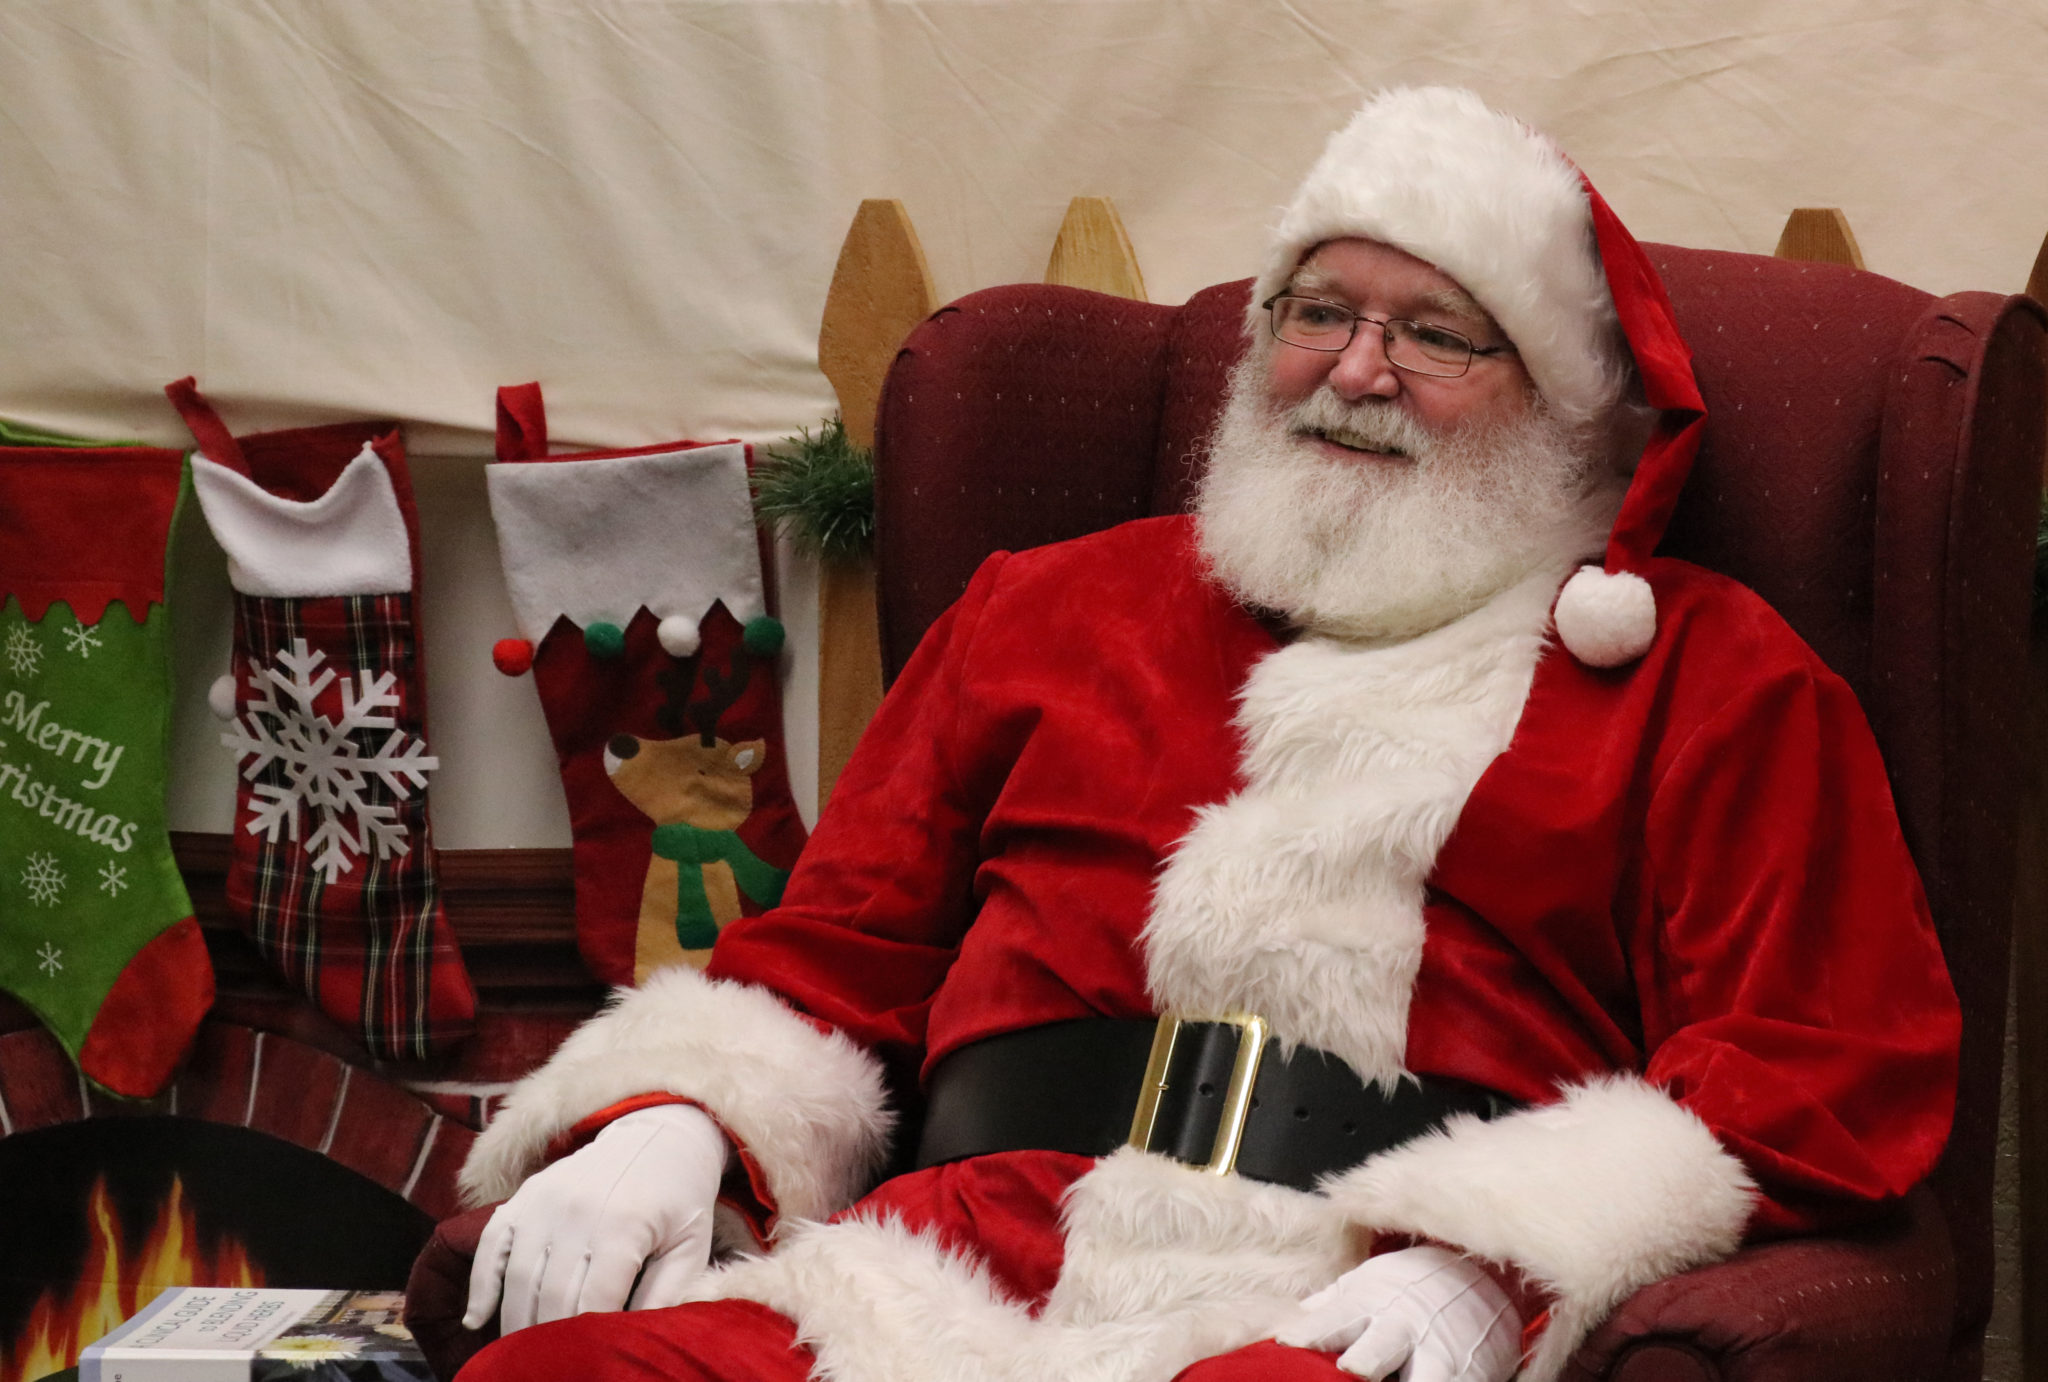 Santa Claus sitting in a big red chair with stockings hanging from a fake fire place